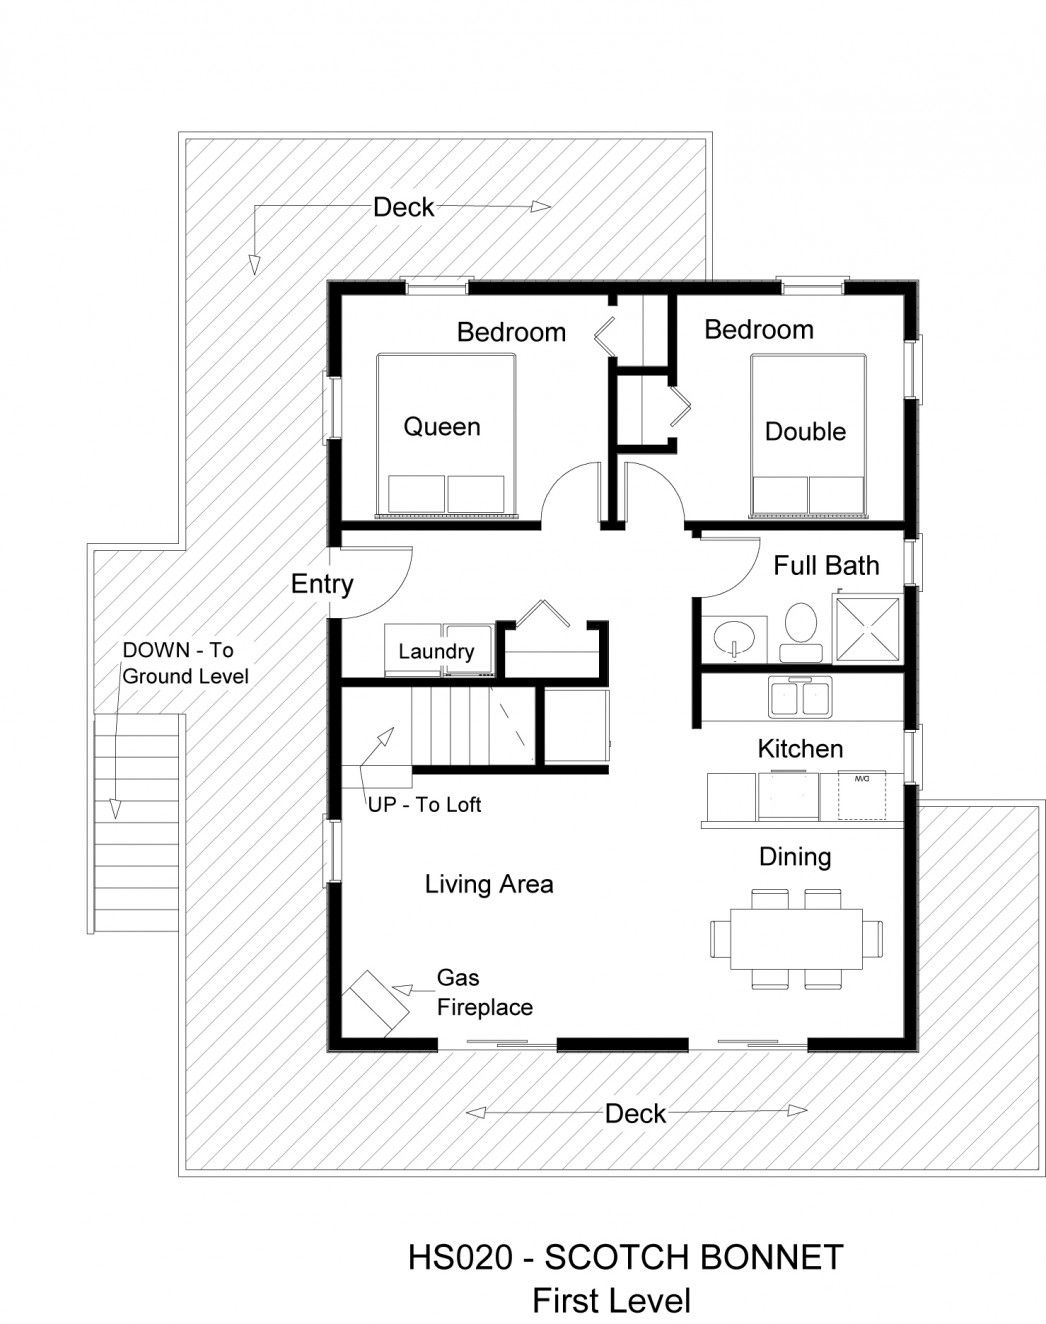 Small Two Bedroom House Plans Quotes Bedroom House Plans 2 Bedroom House Plans Architecture House Plans With Photos Small House Blueprints Bedroom House Plans